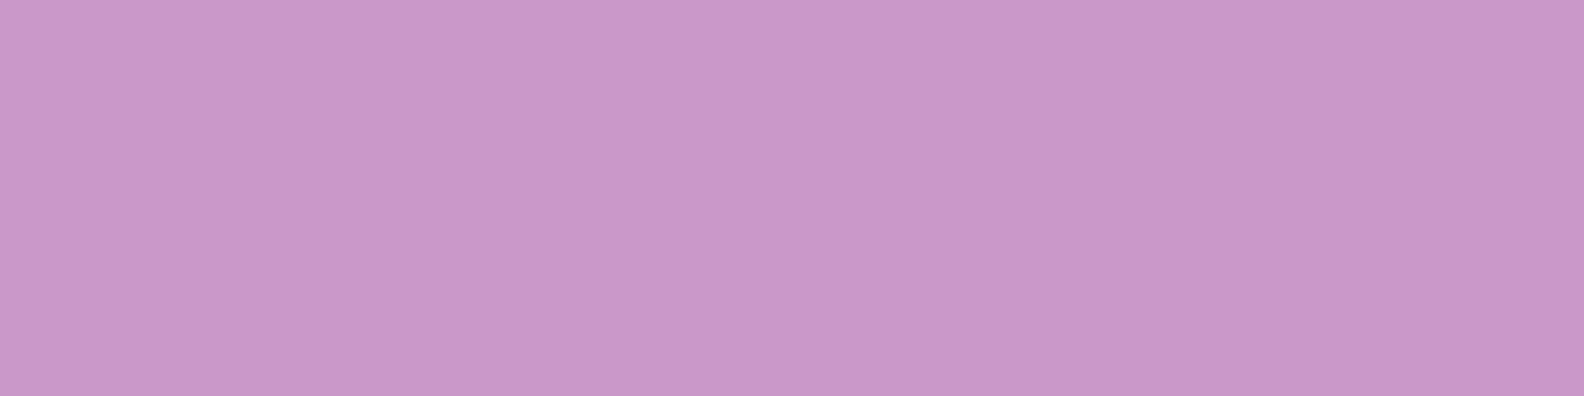 1584x396 Pastel Violet Solid Color Background